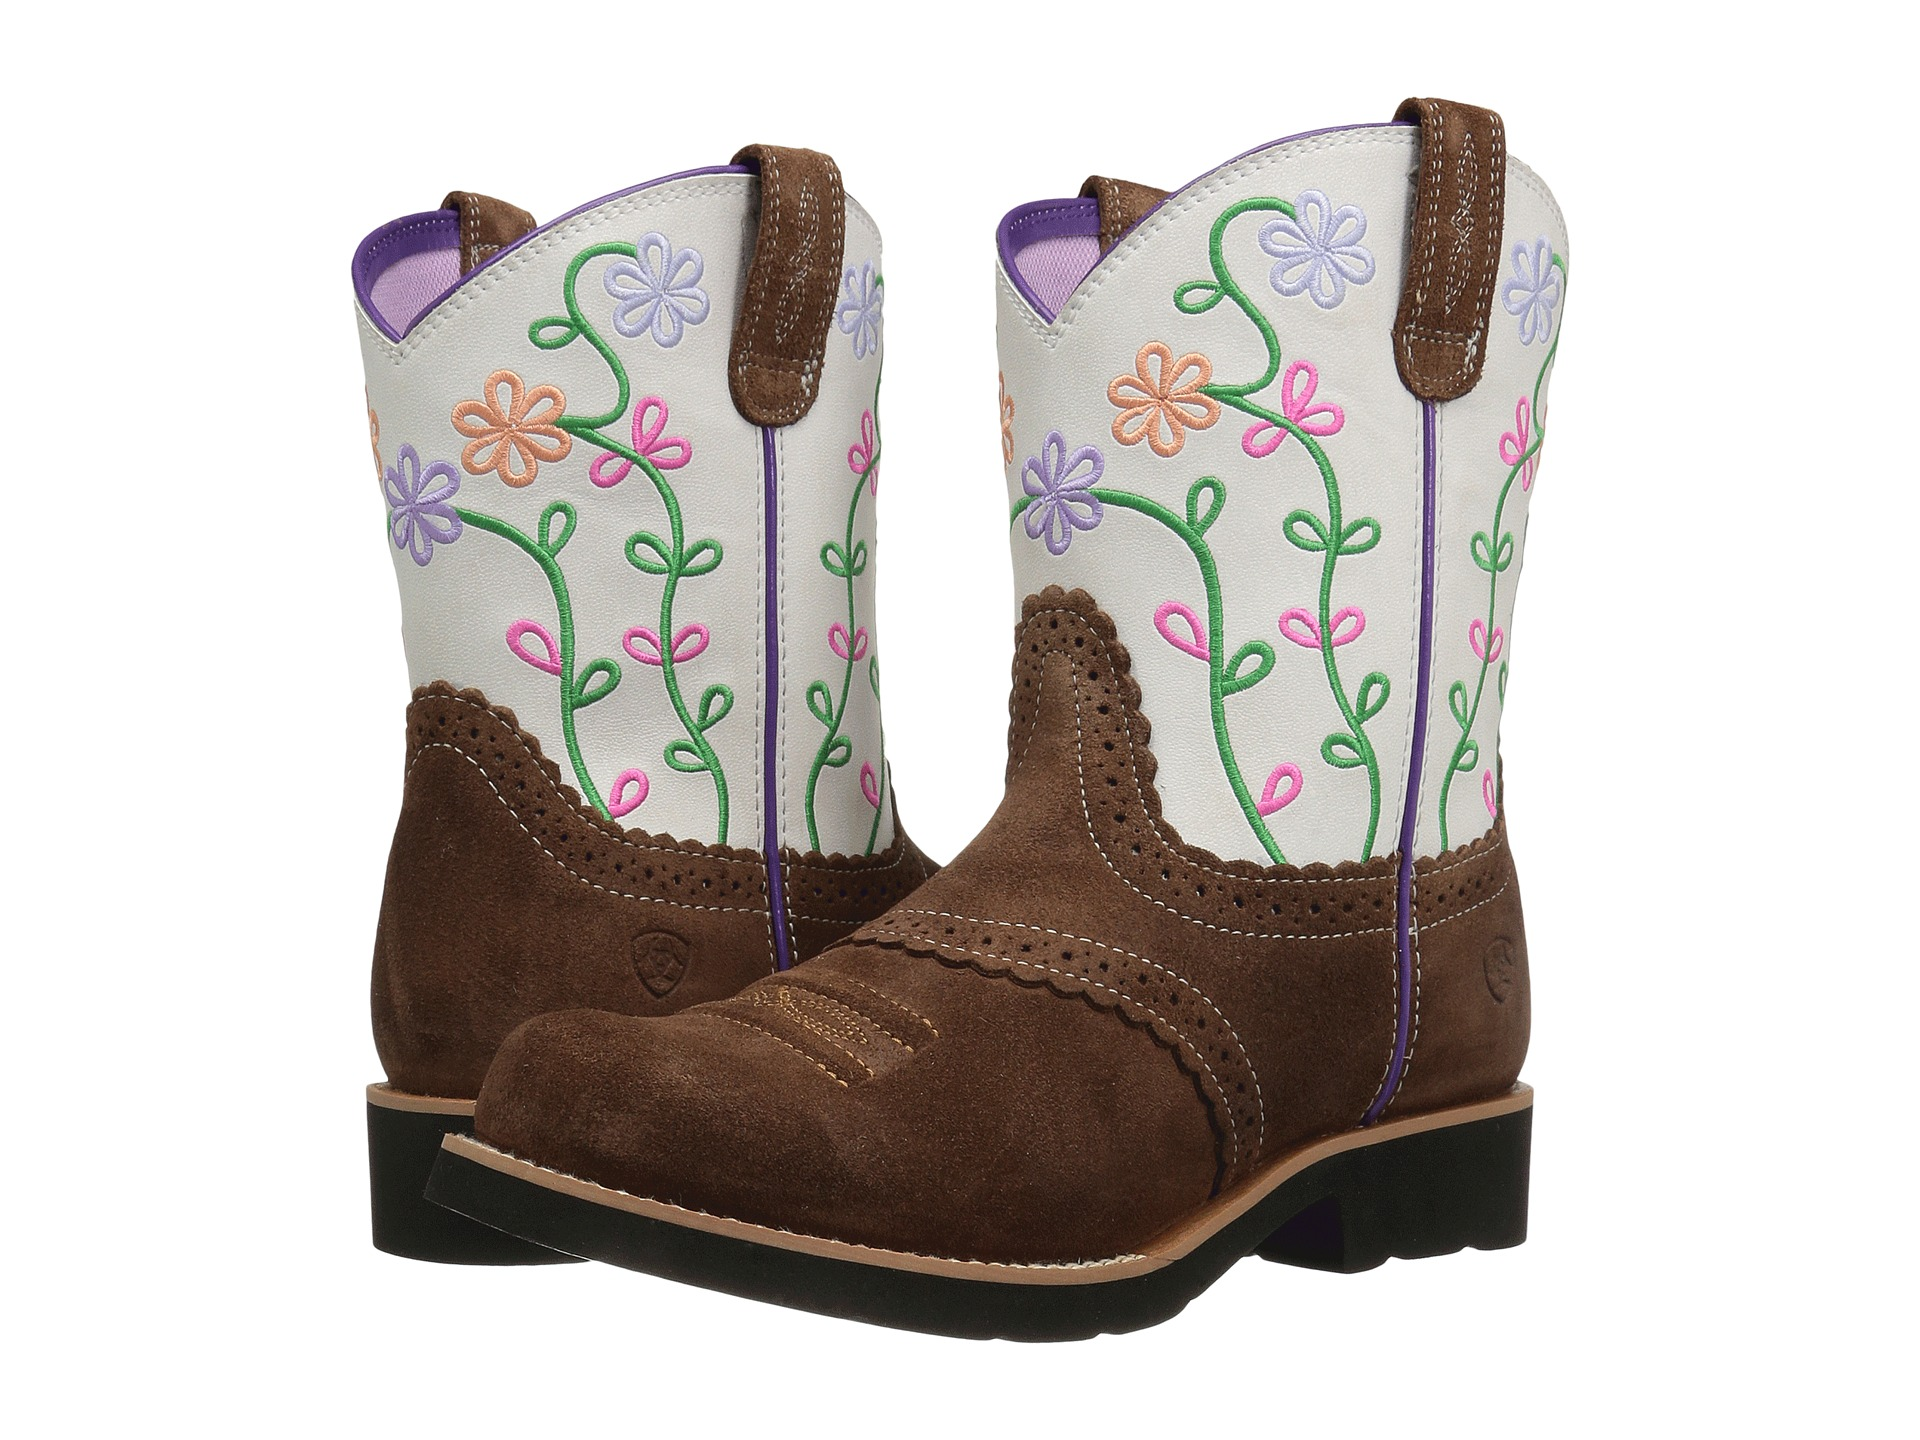 Ariat Kids Fatbaby Blossom (Toddler/Little Kid/Big Kid) - Zappos ...